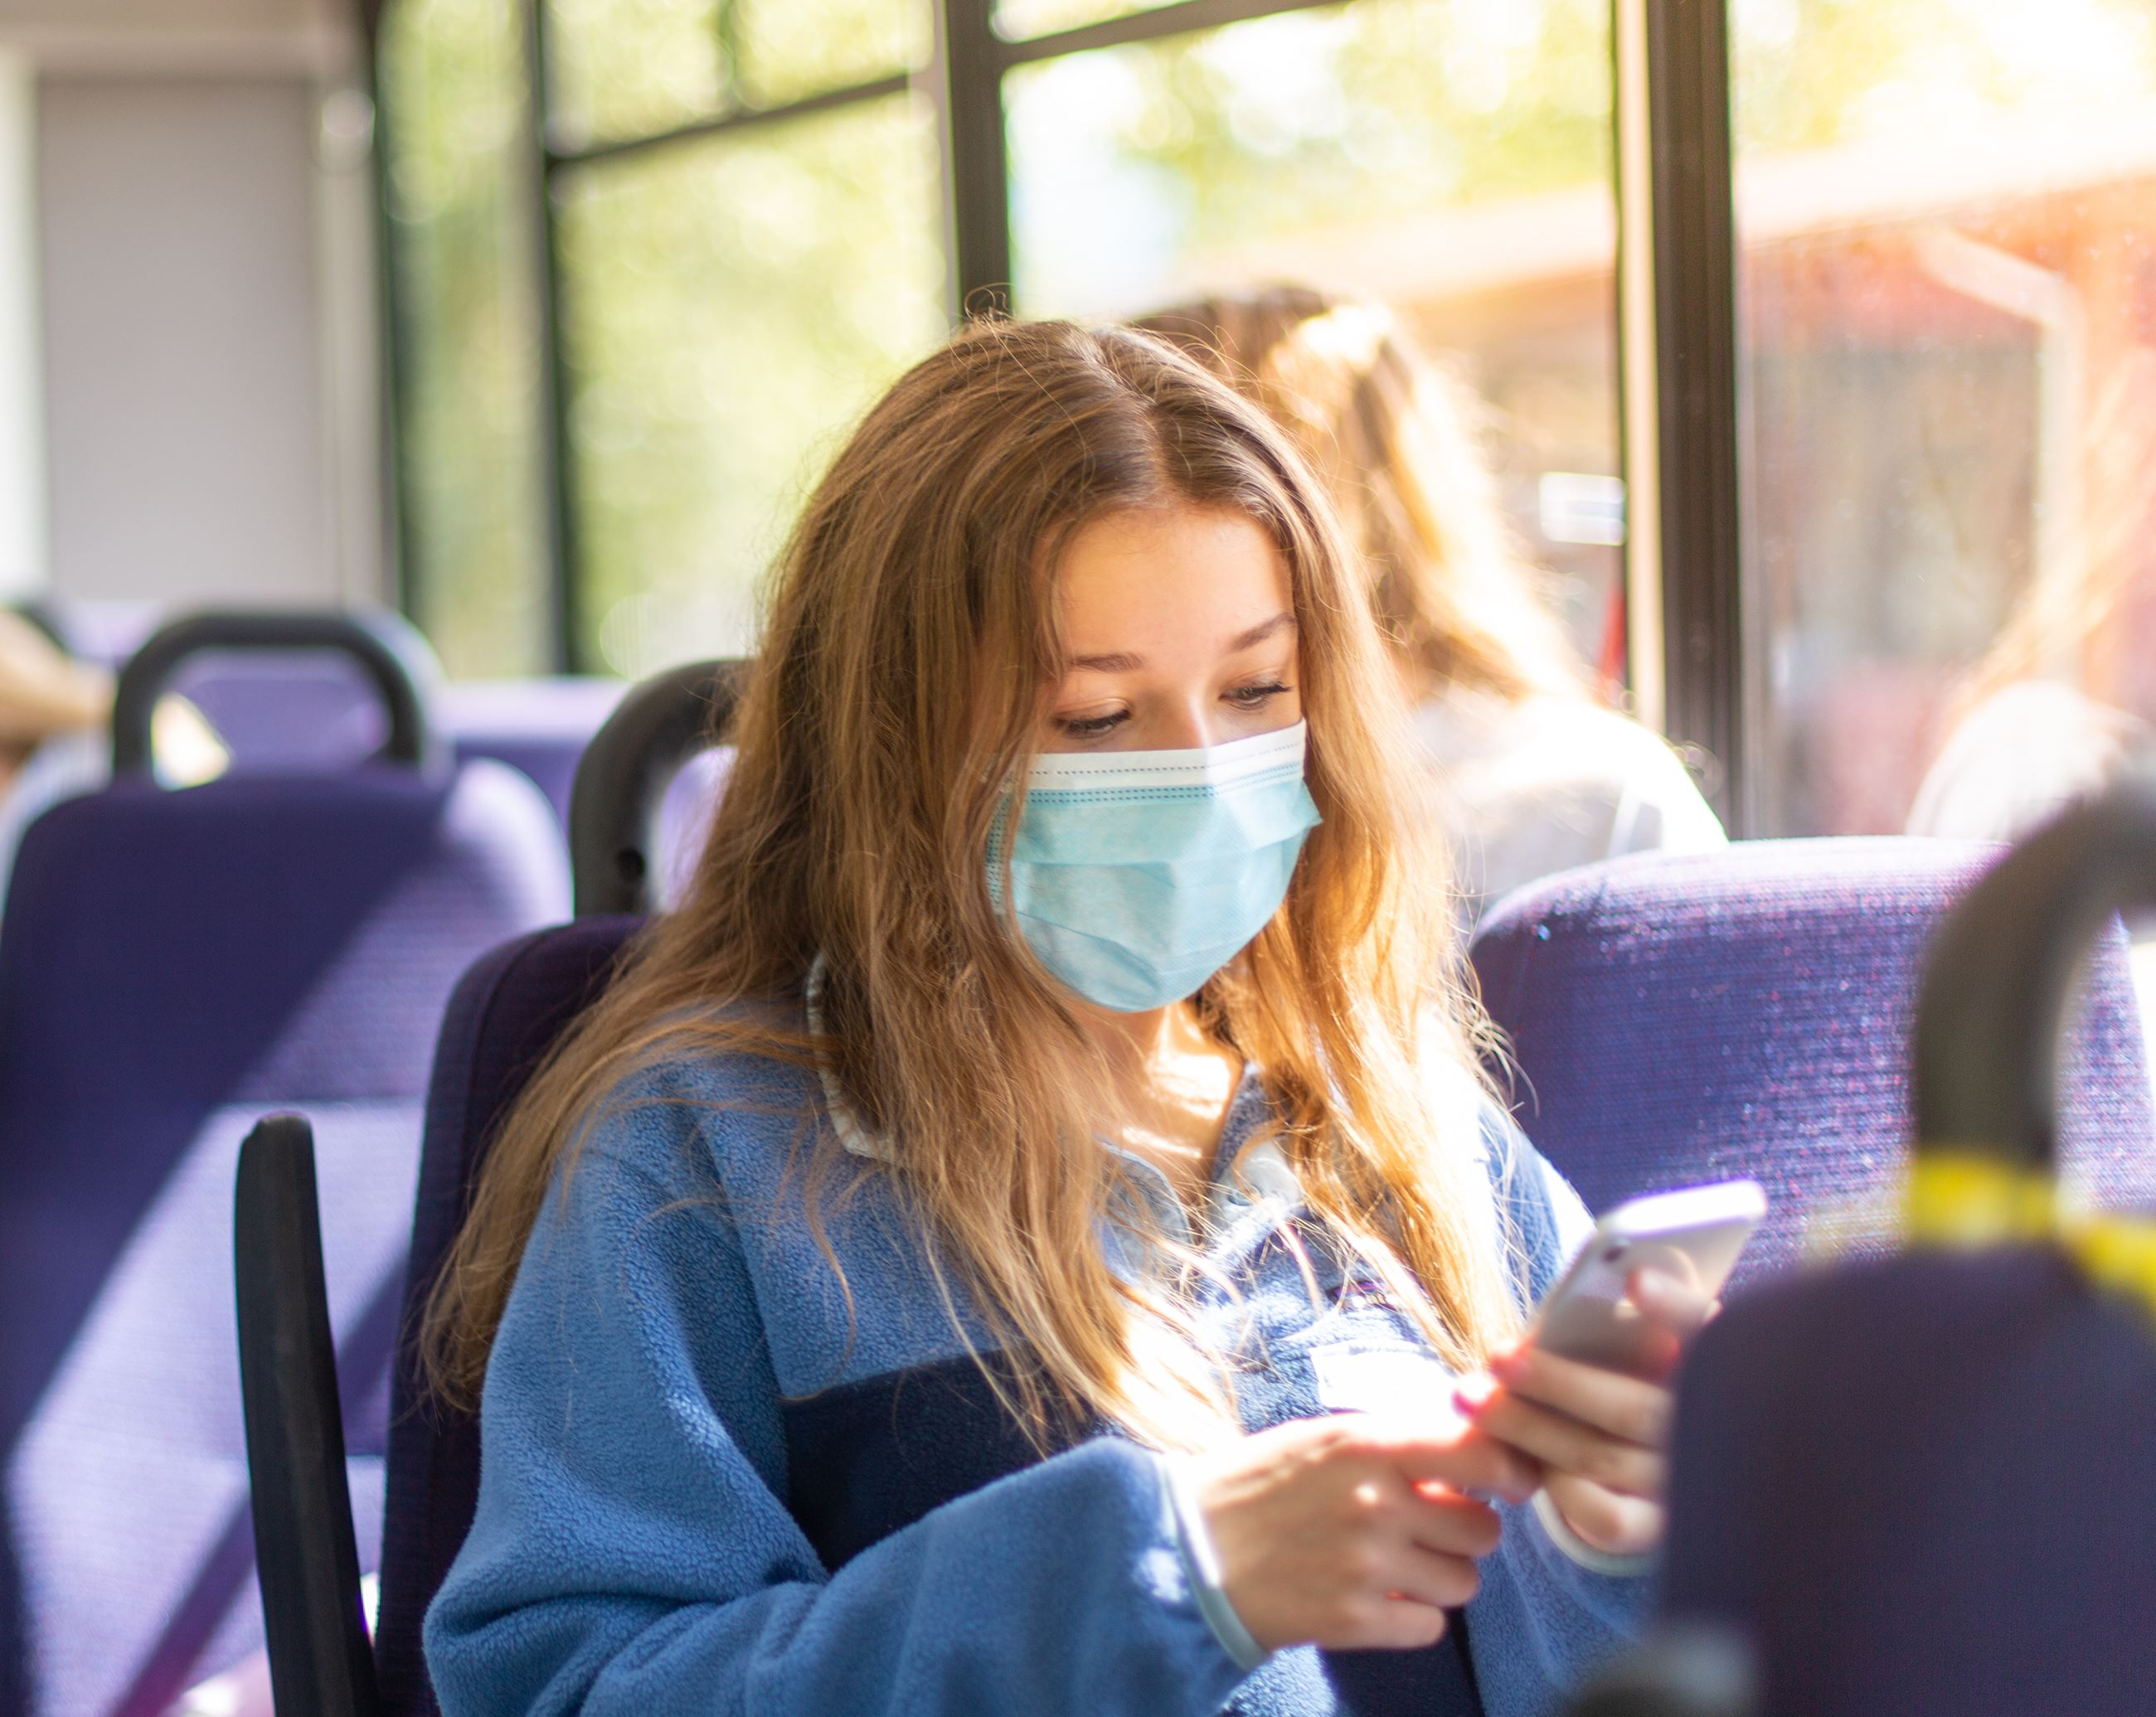 Young girl looking at phone on the bus